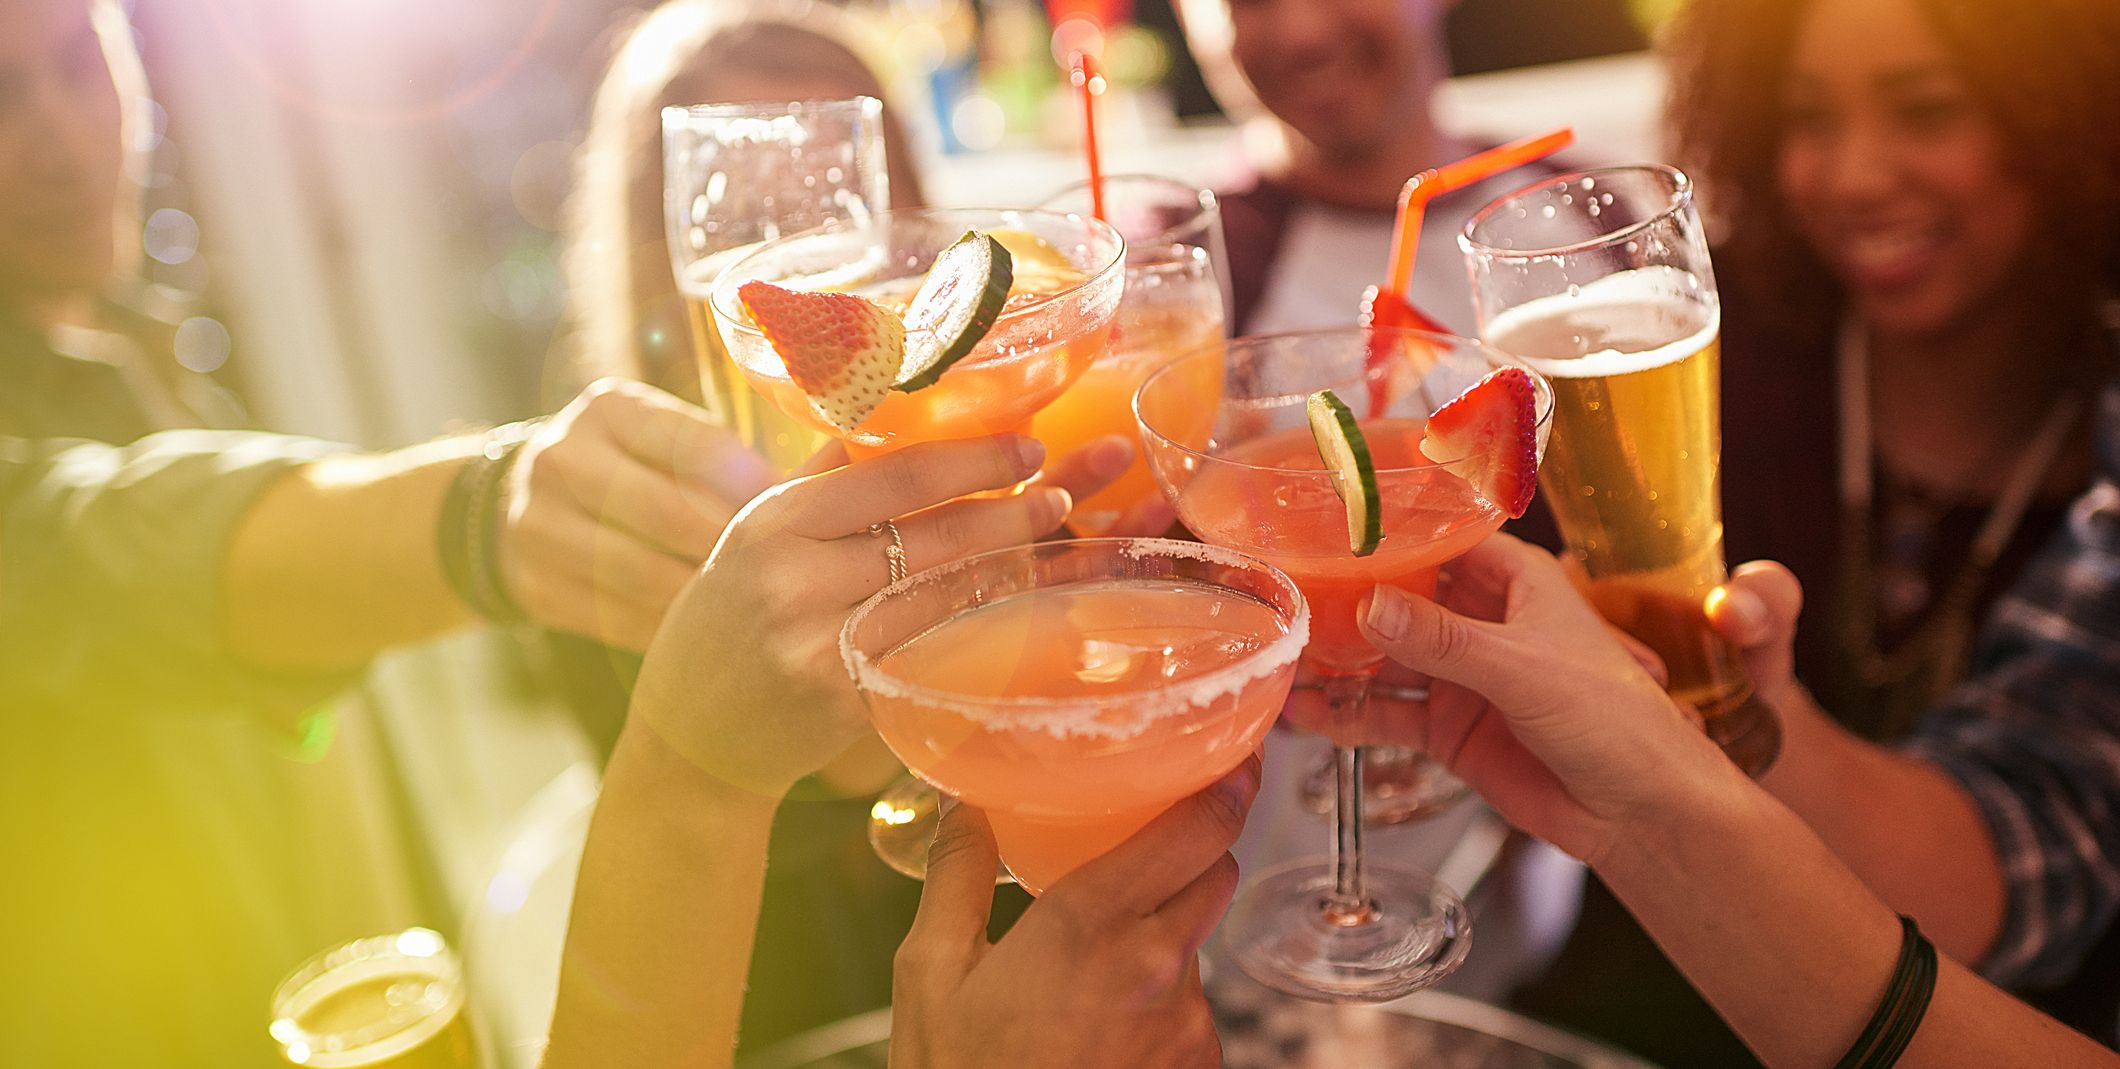 12 Low-Calorie Alcoholic Drinks to Order if You're Trying to Lose Weight